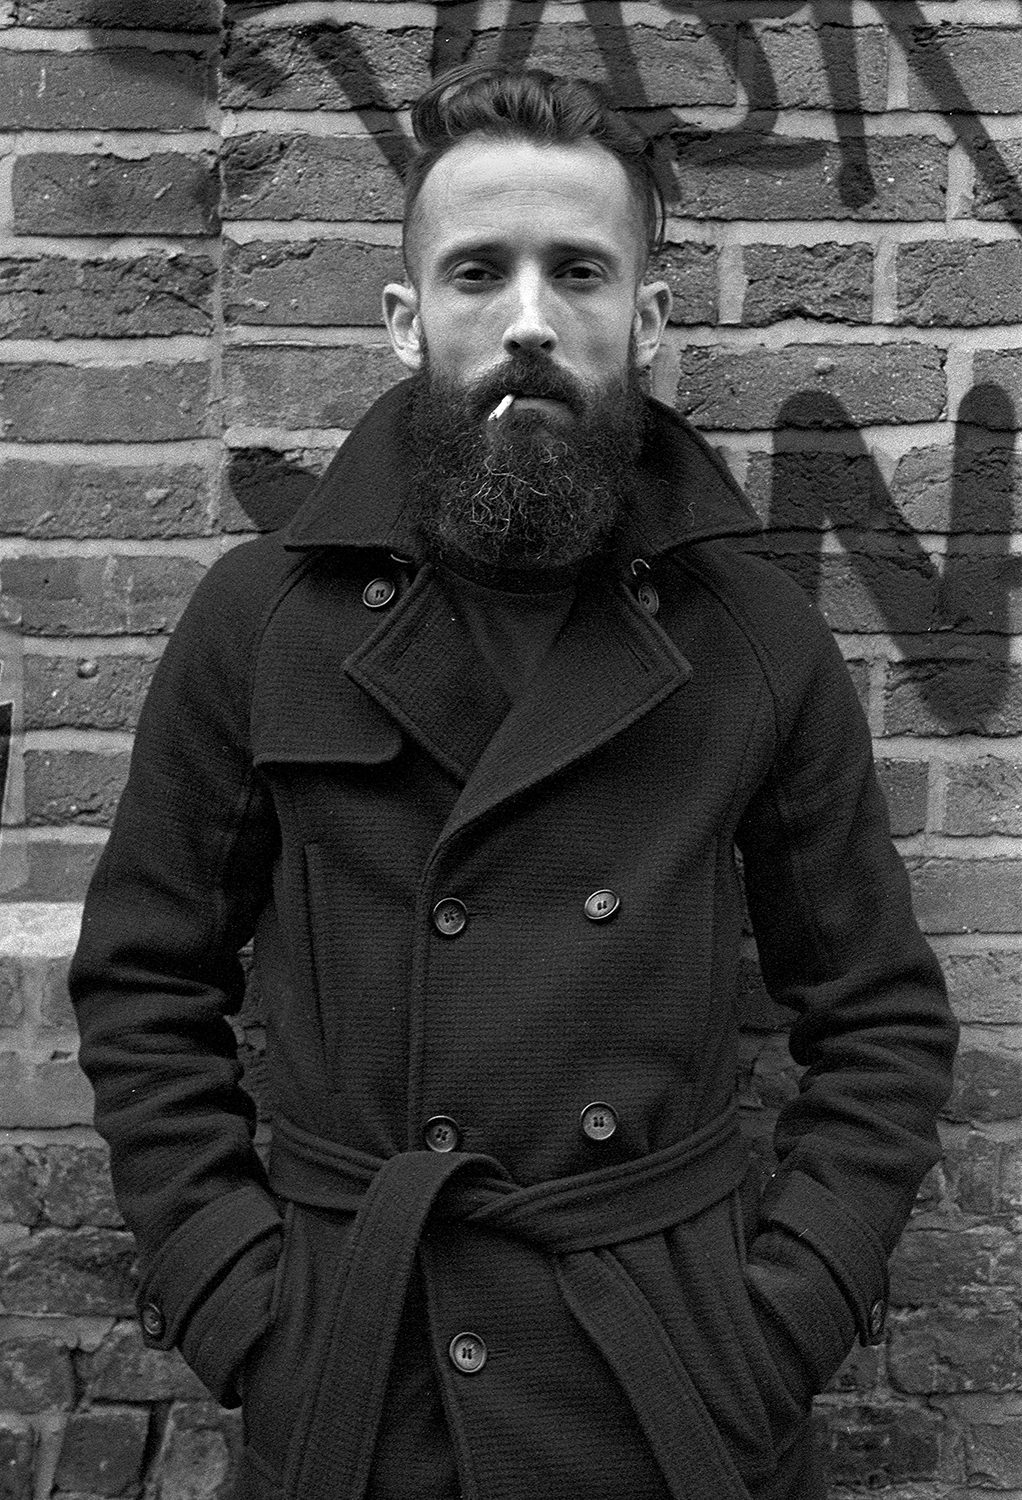 Portrait of a Man with Beard Manchester shot on ILFORD black and white film by Keith Moss